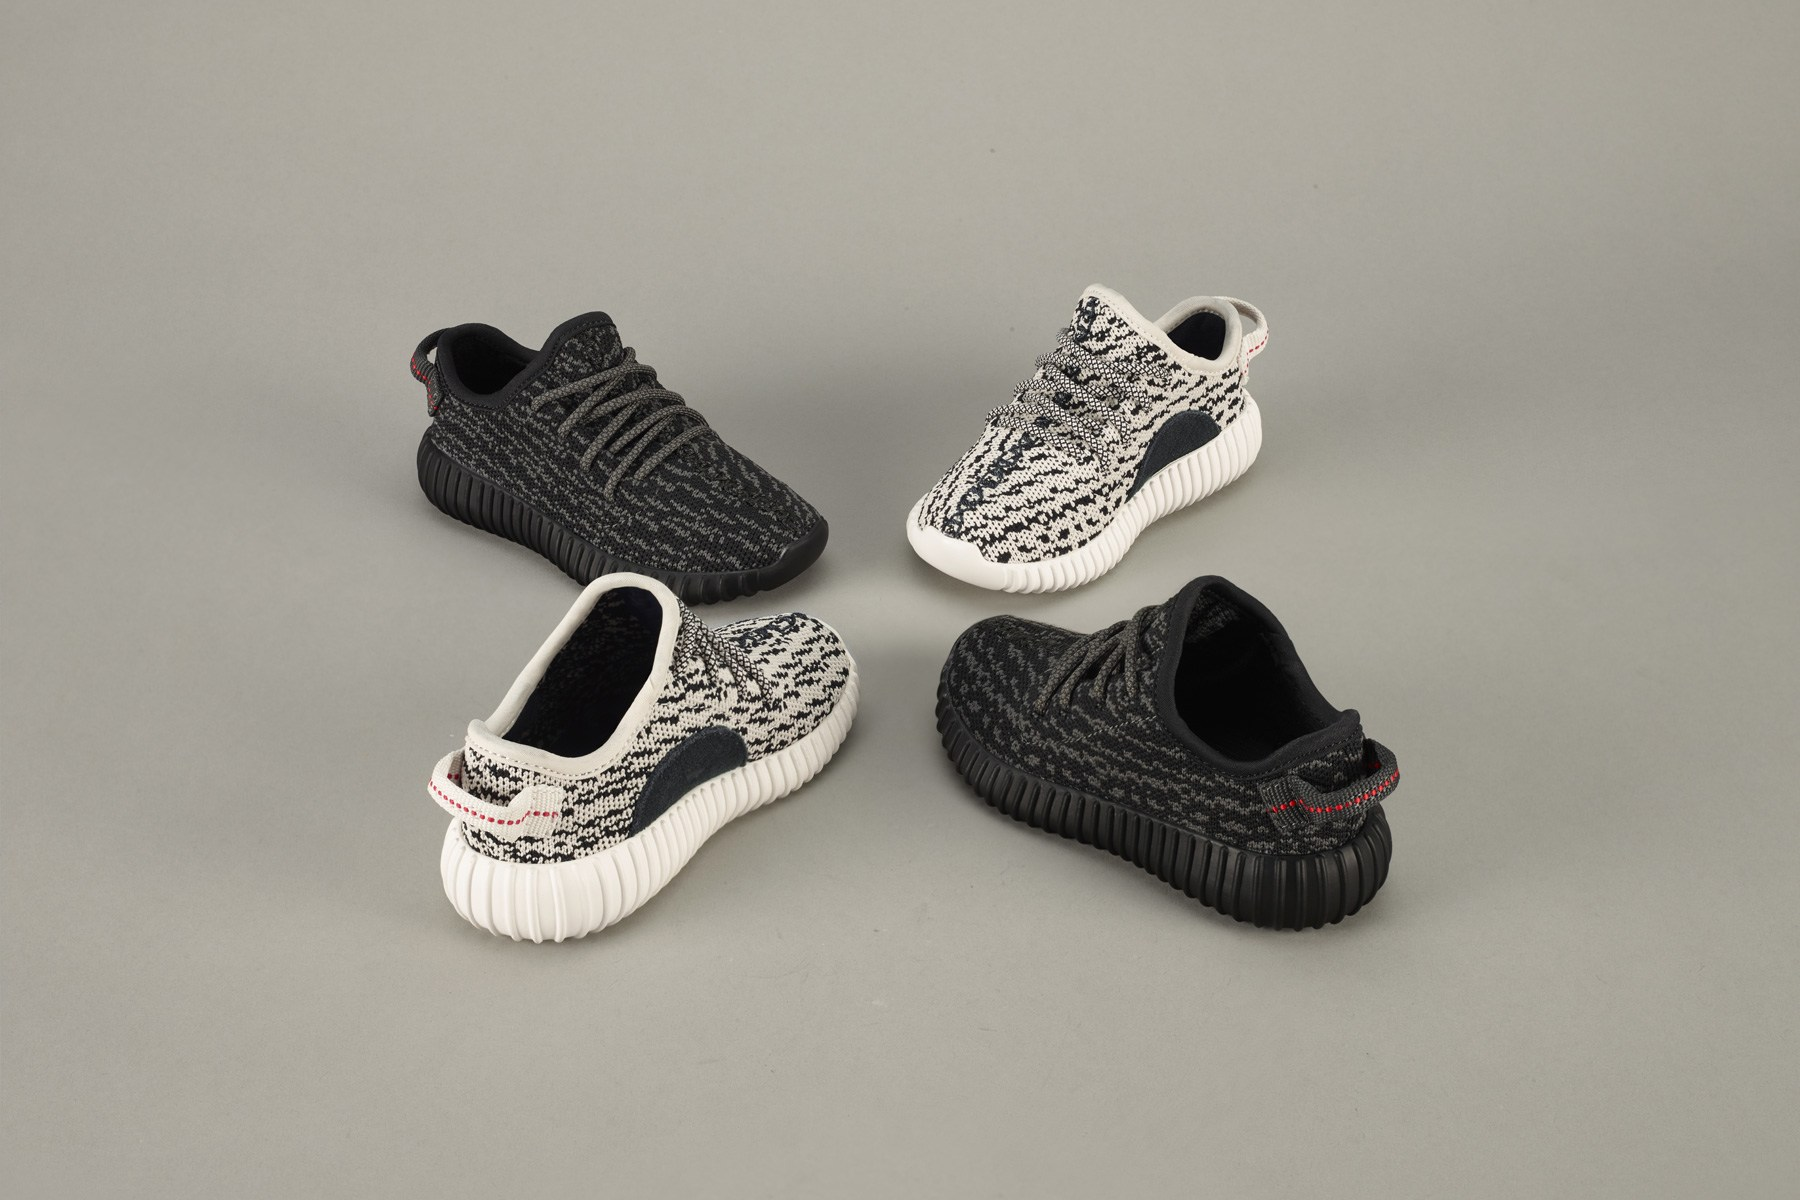 adidas Announces Locations for the Infant Yeezy 350 Boost